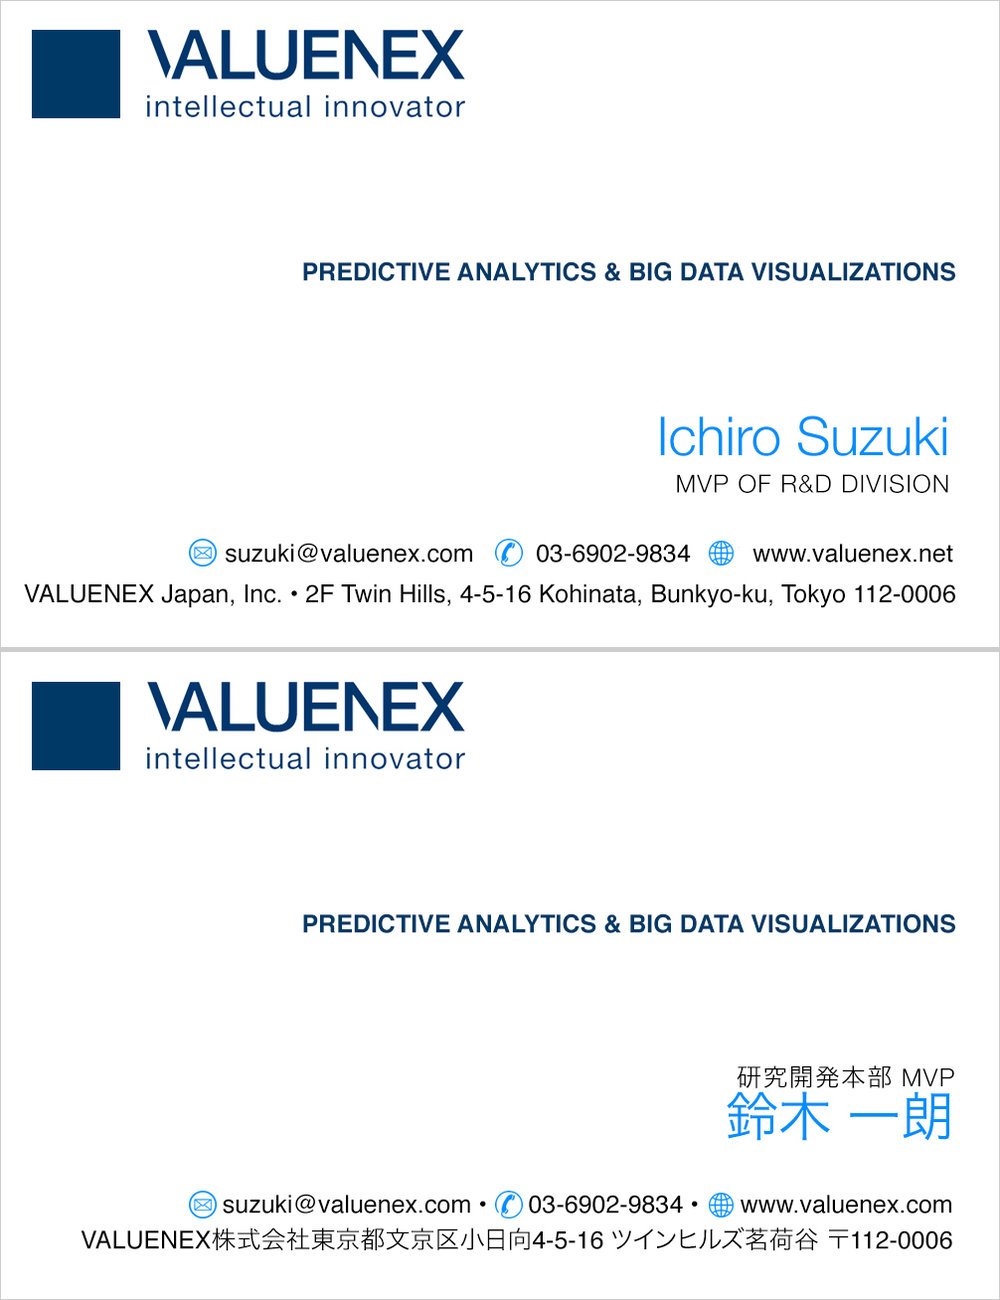 VALUENEX Japan • Option 2